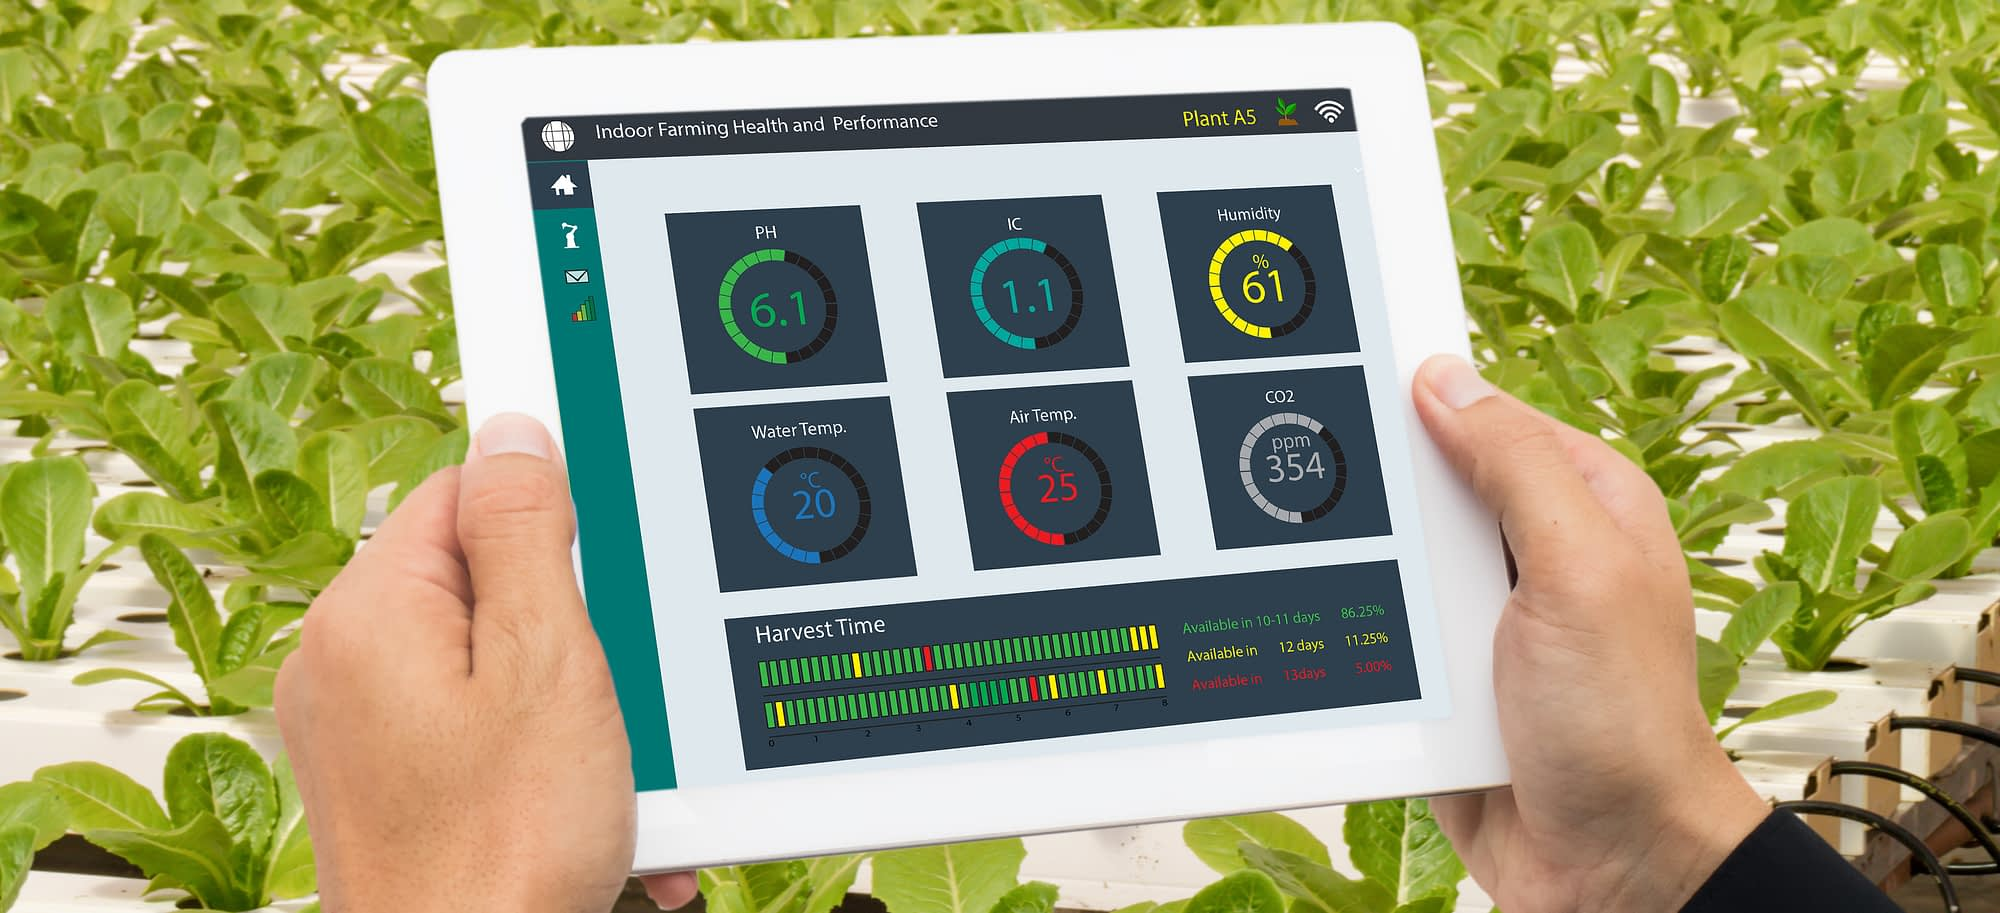 IoT Solutions - Smart Farming Concept Solution Image